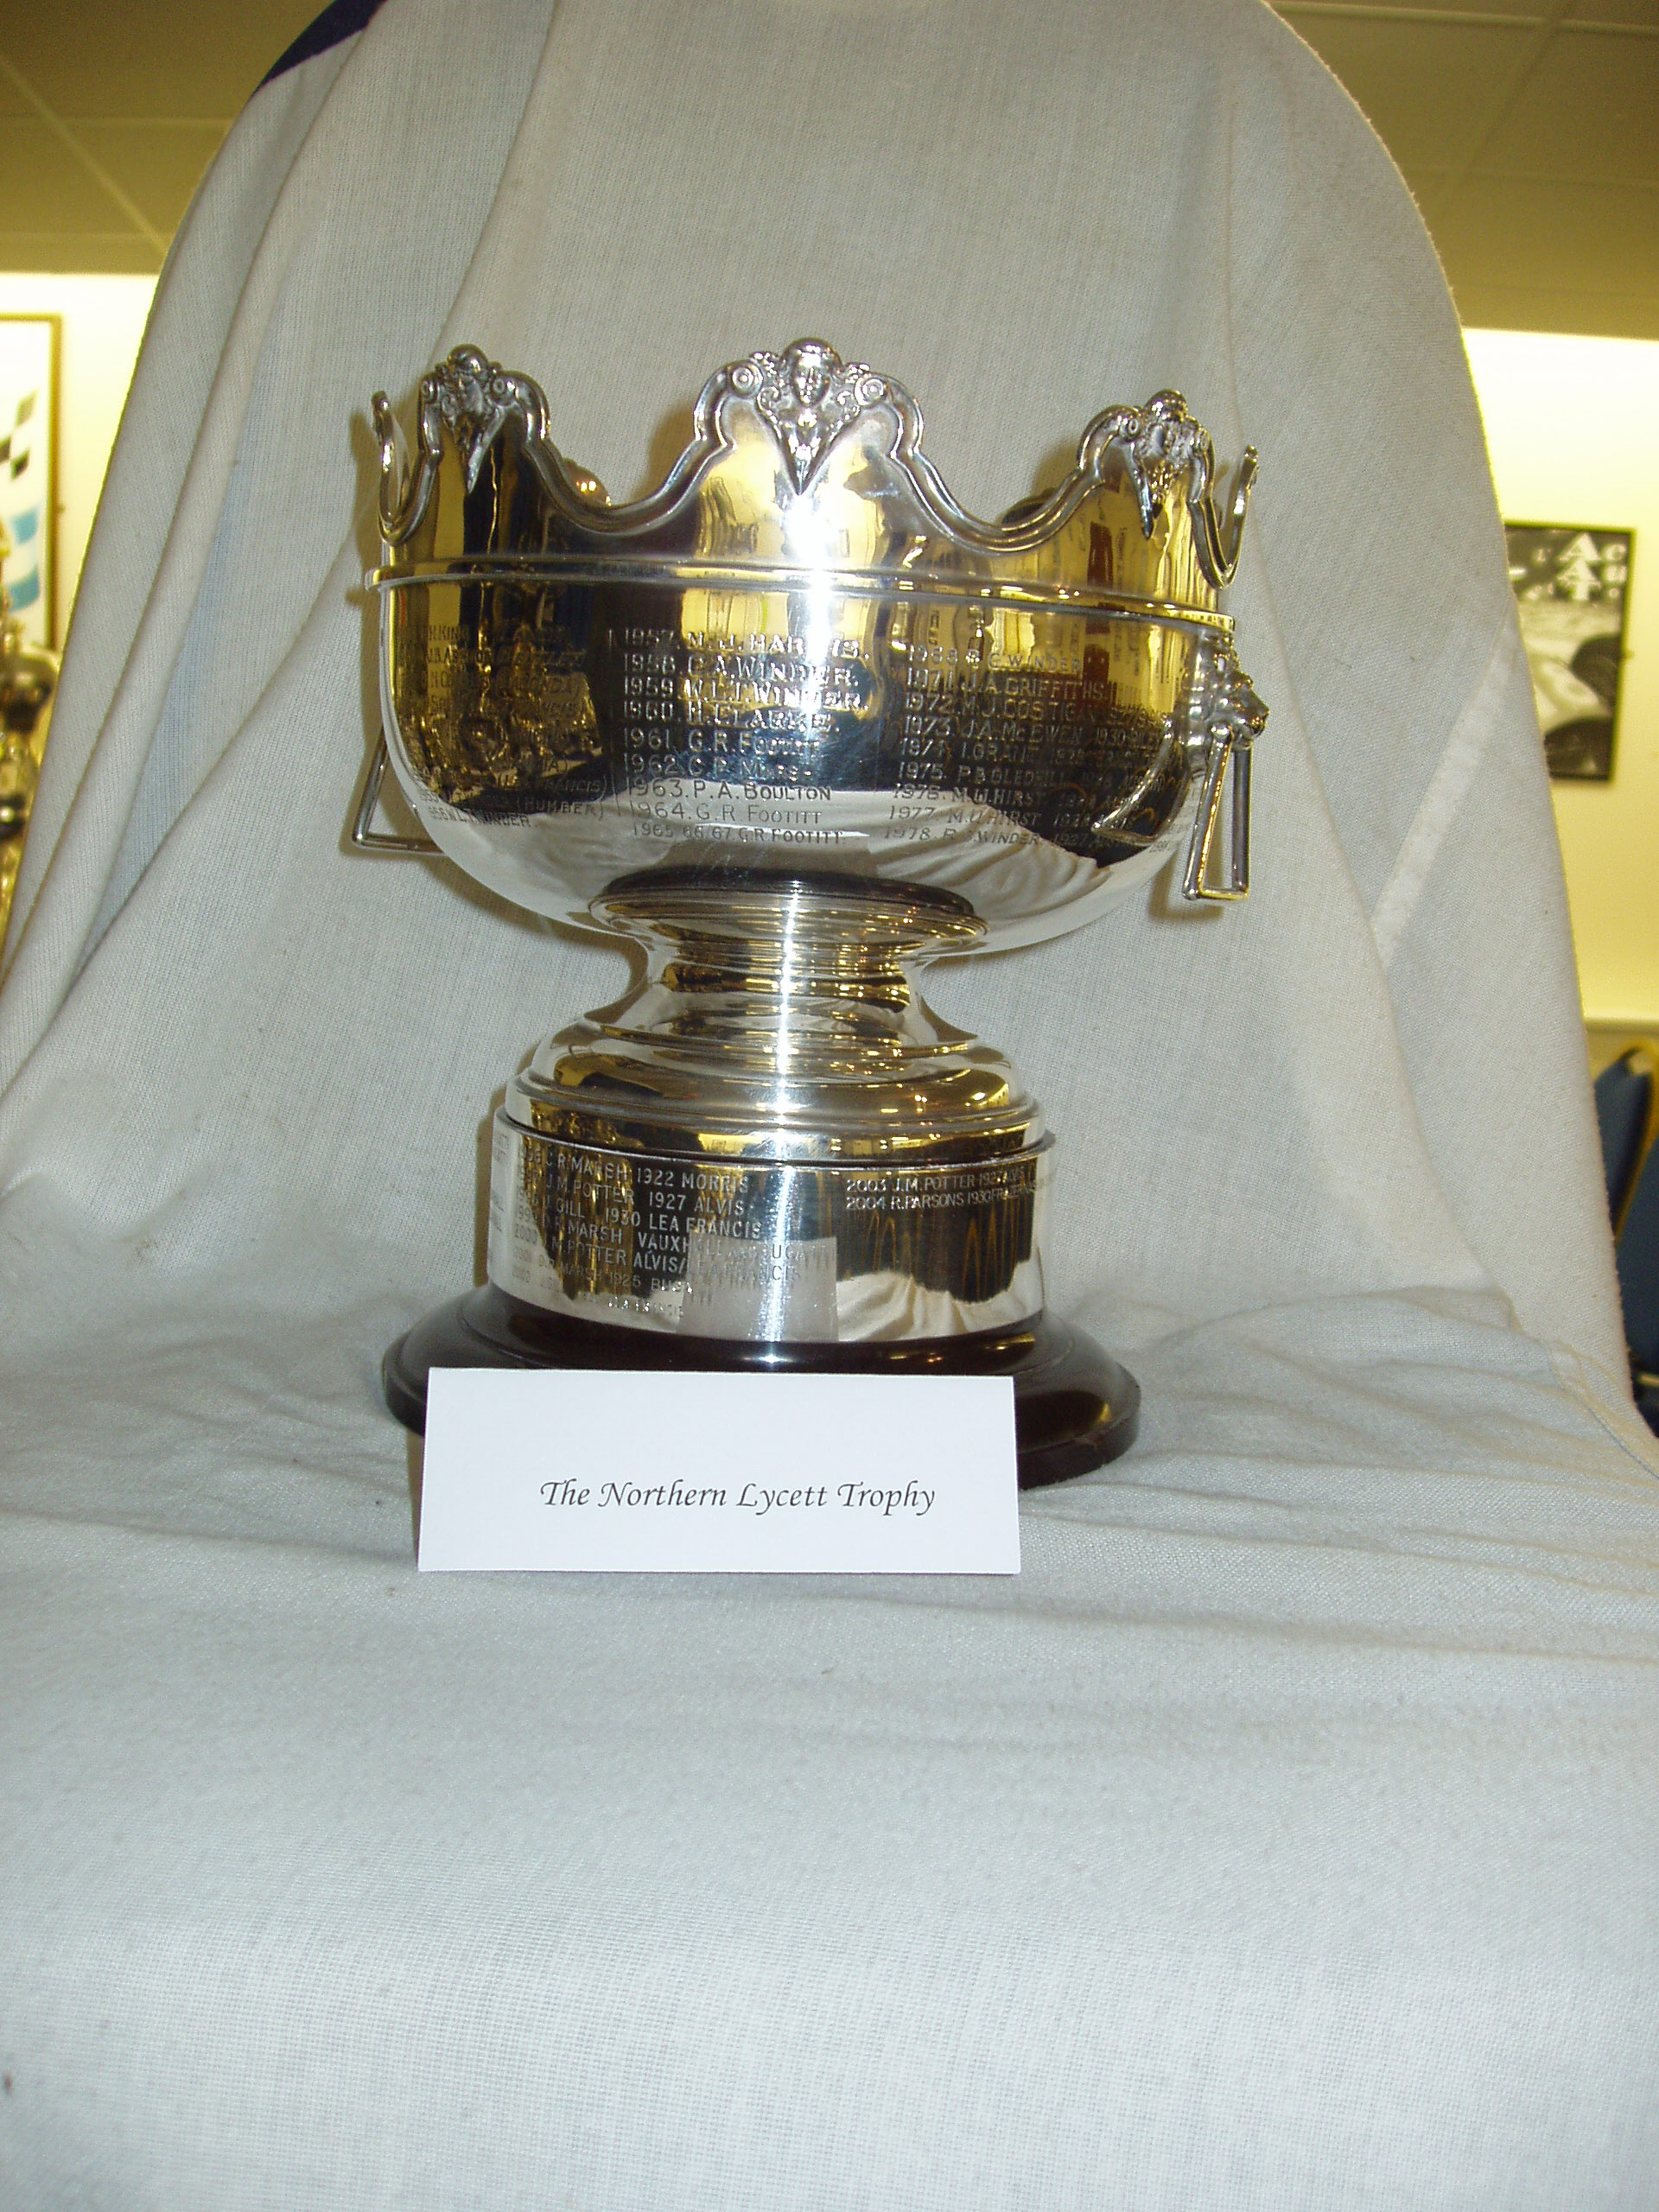 NORTHERN LYCETT TROPHY cover